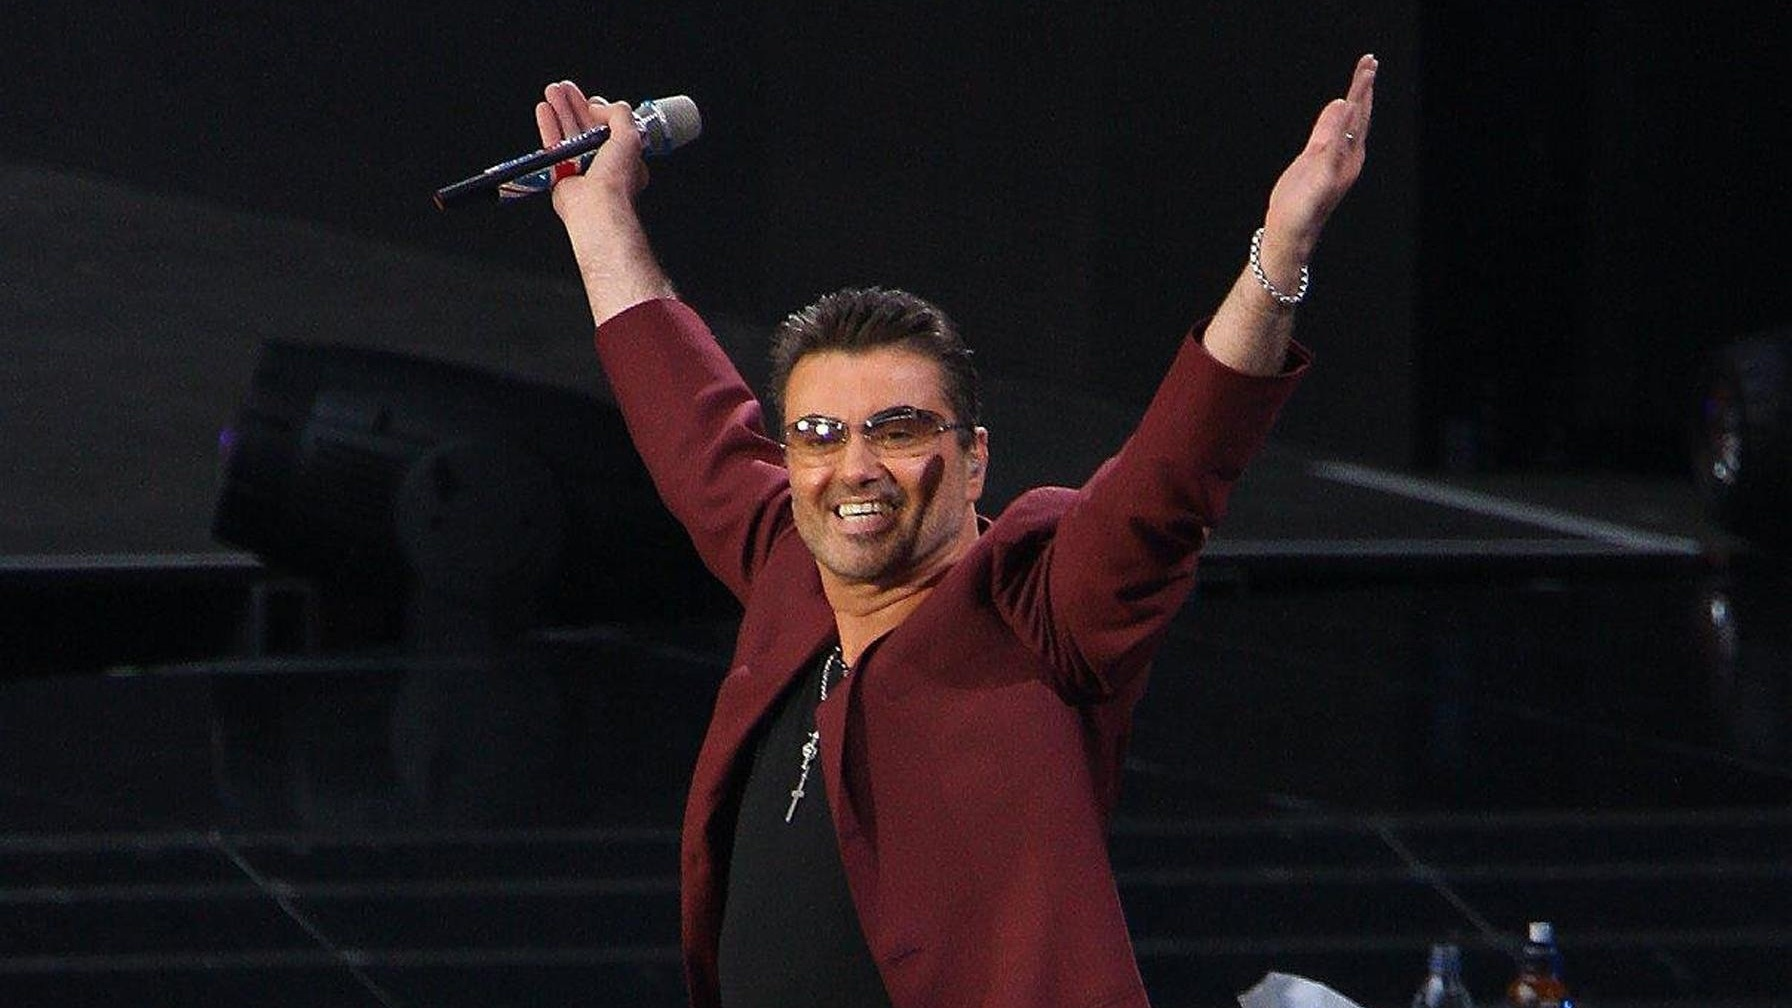 George Michael's death was another sad chapter in a long list of celebrity deaths in 2016.